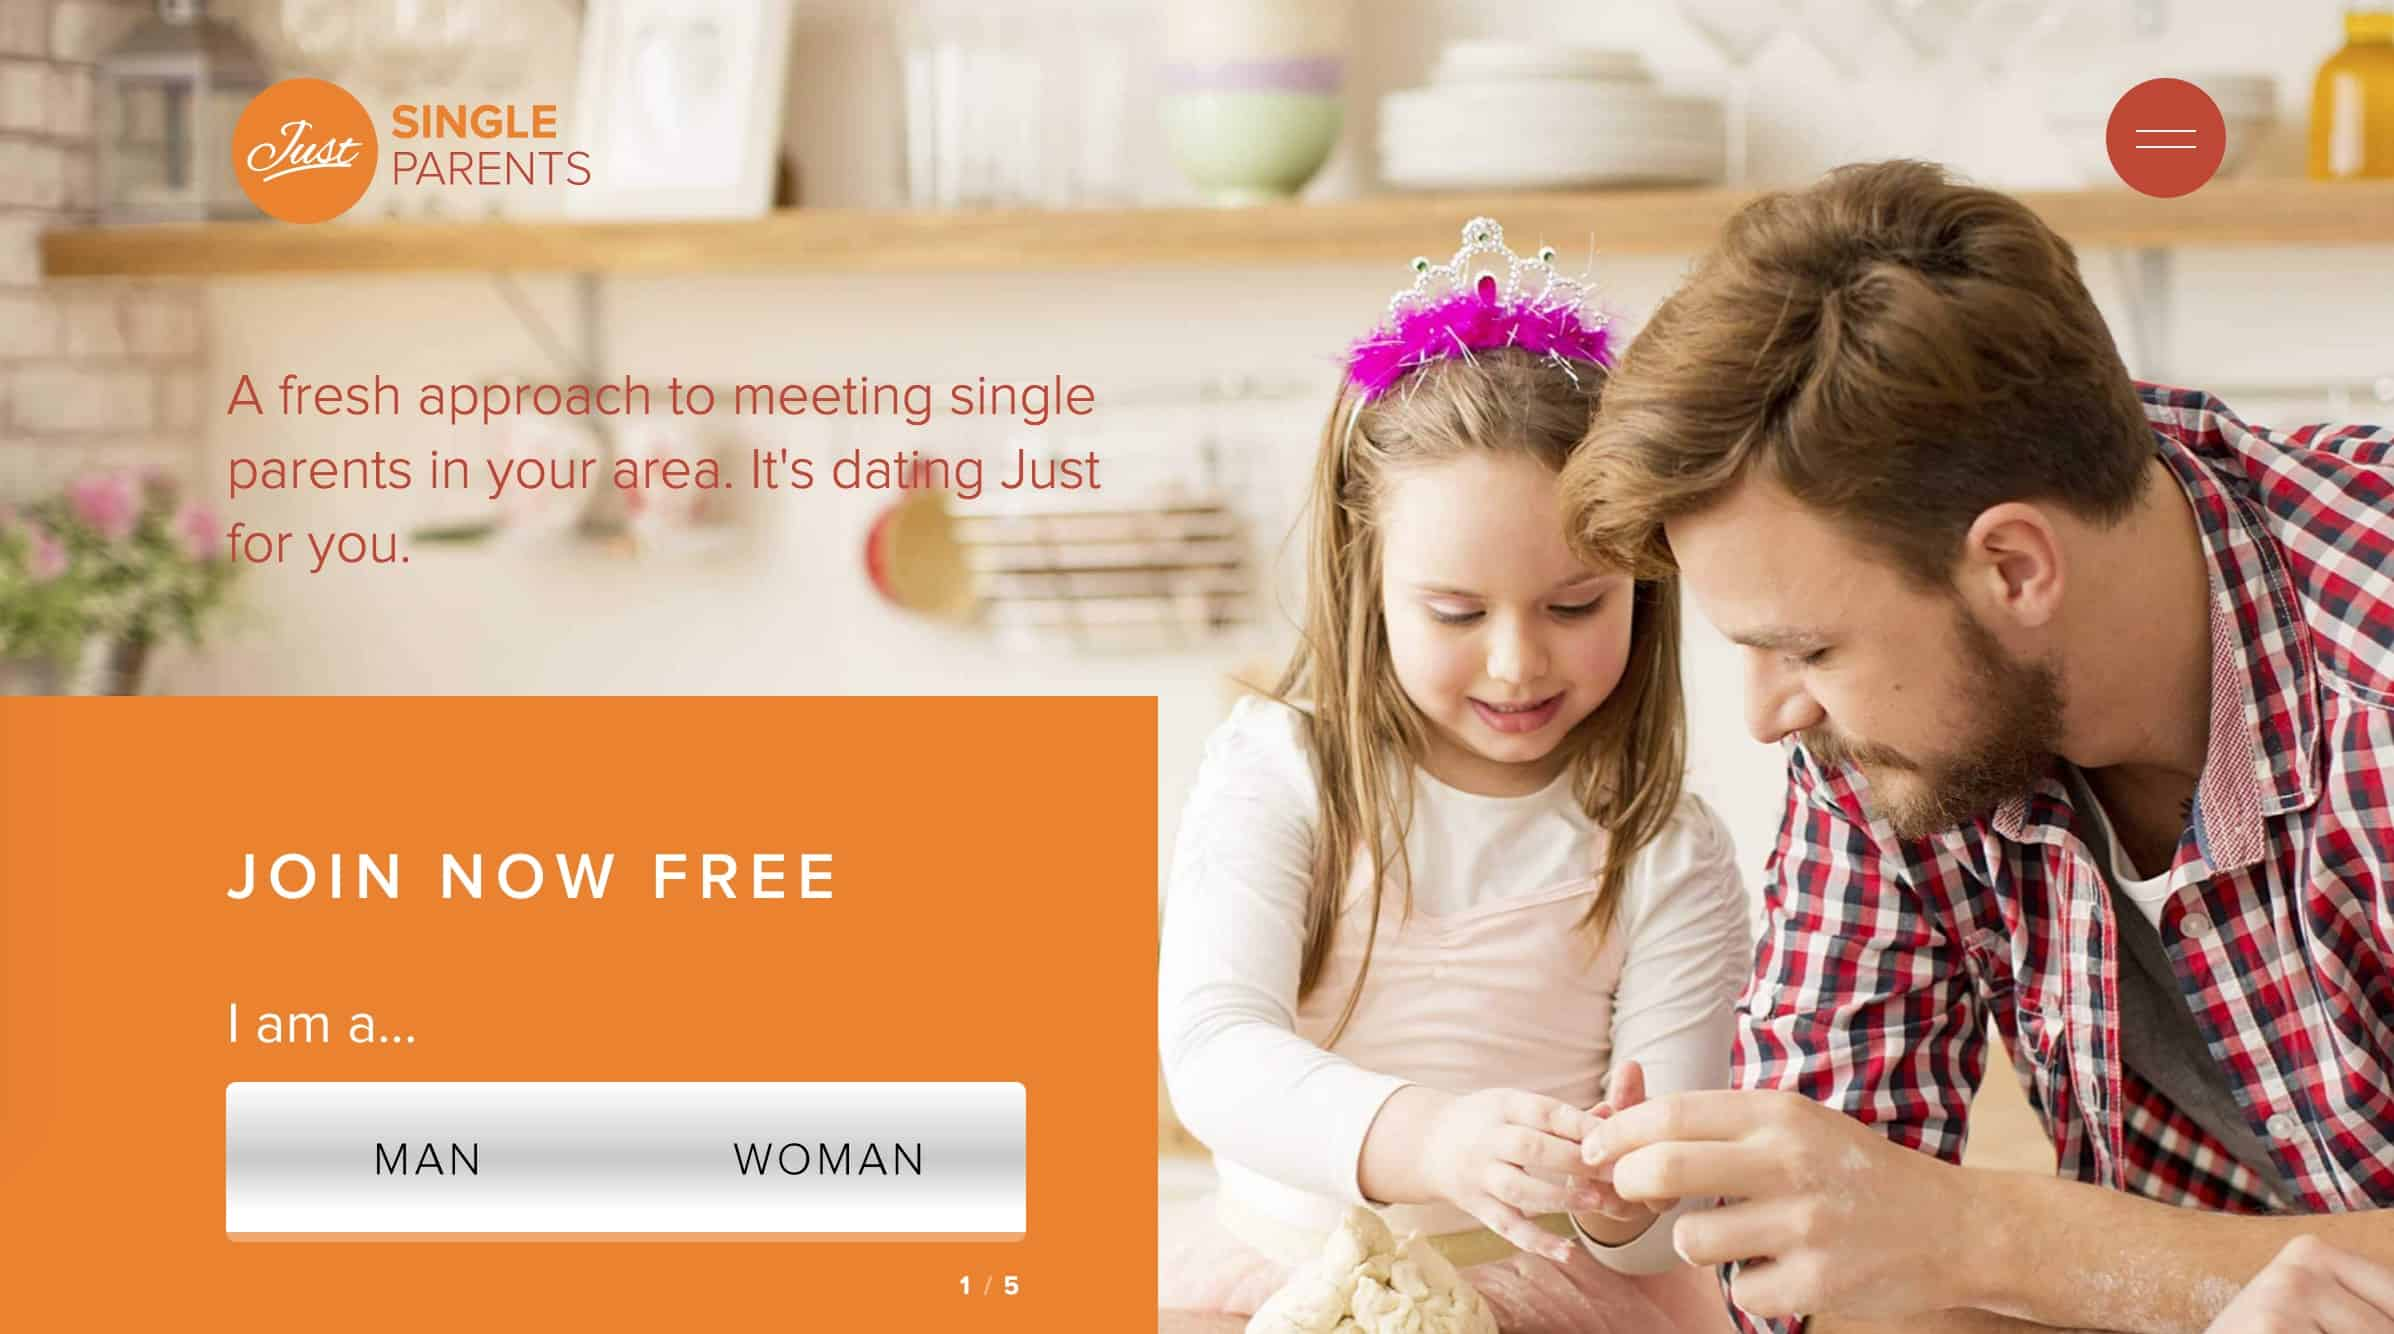 yiyuan single parent dating site Are you a single mom or single dad  partners trust singleparentmeetcom to  help them succeed at online dating  meet other single parents near you   singleparentmeetcom is a niche dating service for single women and single  men.